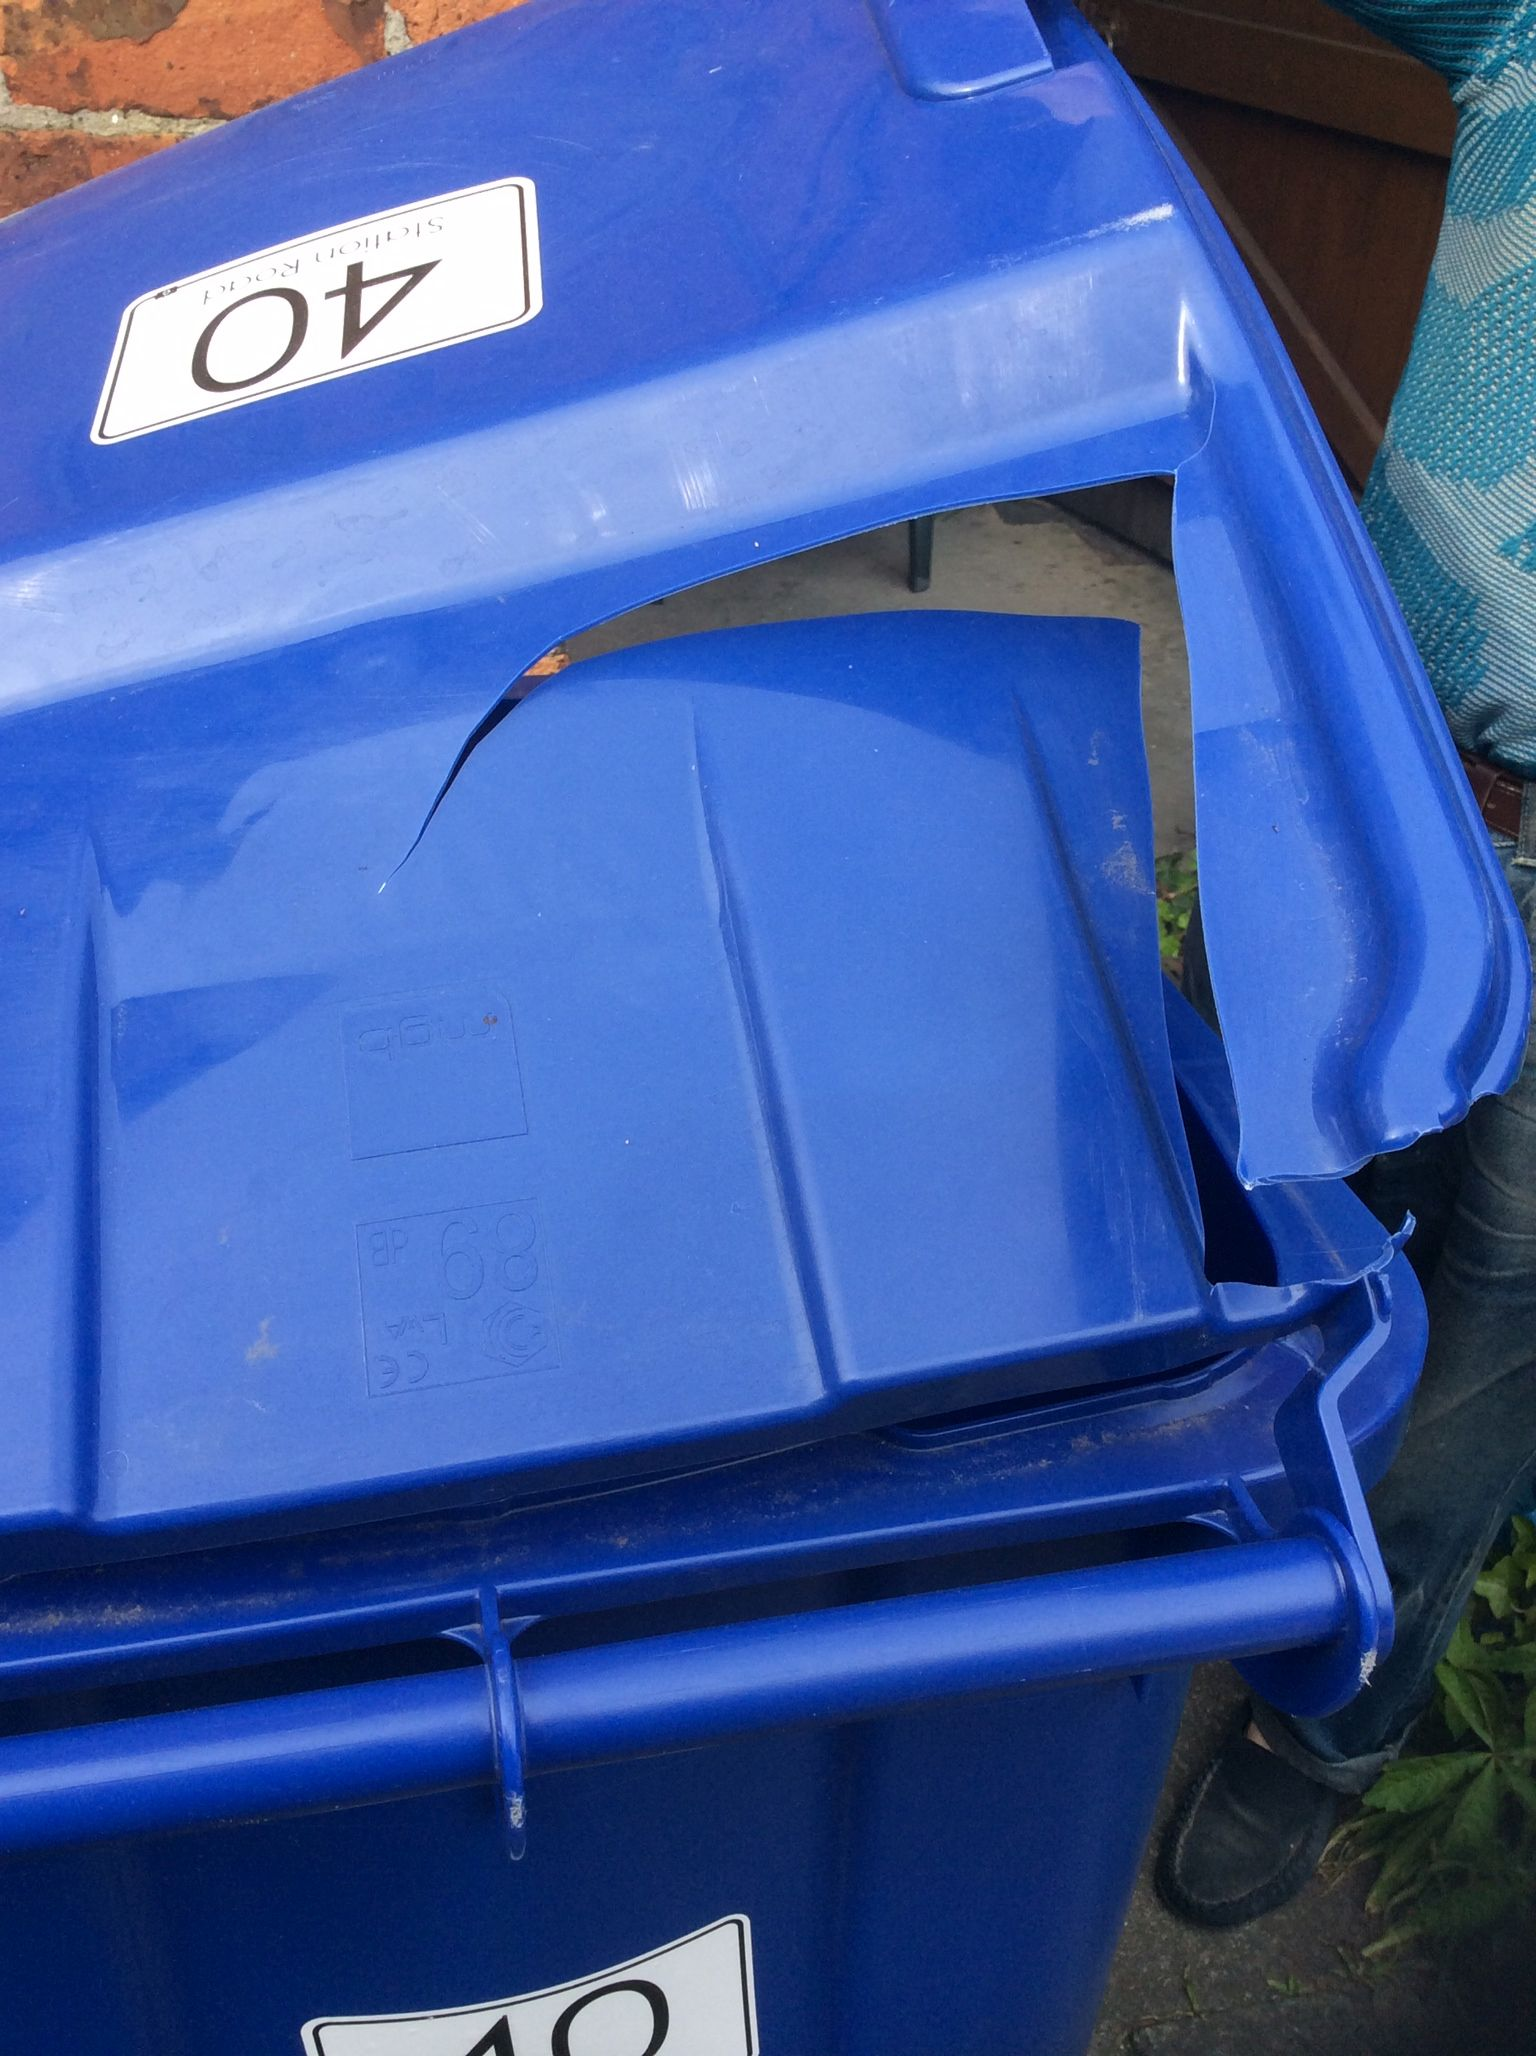 , Council Leader quizzed over Waste bin Breakages, Skem News - The Top Source for Skelmersdale News